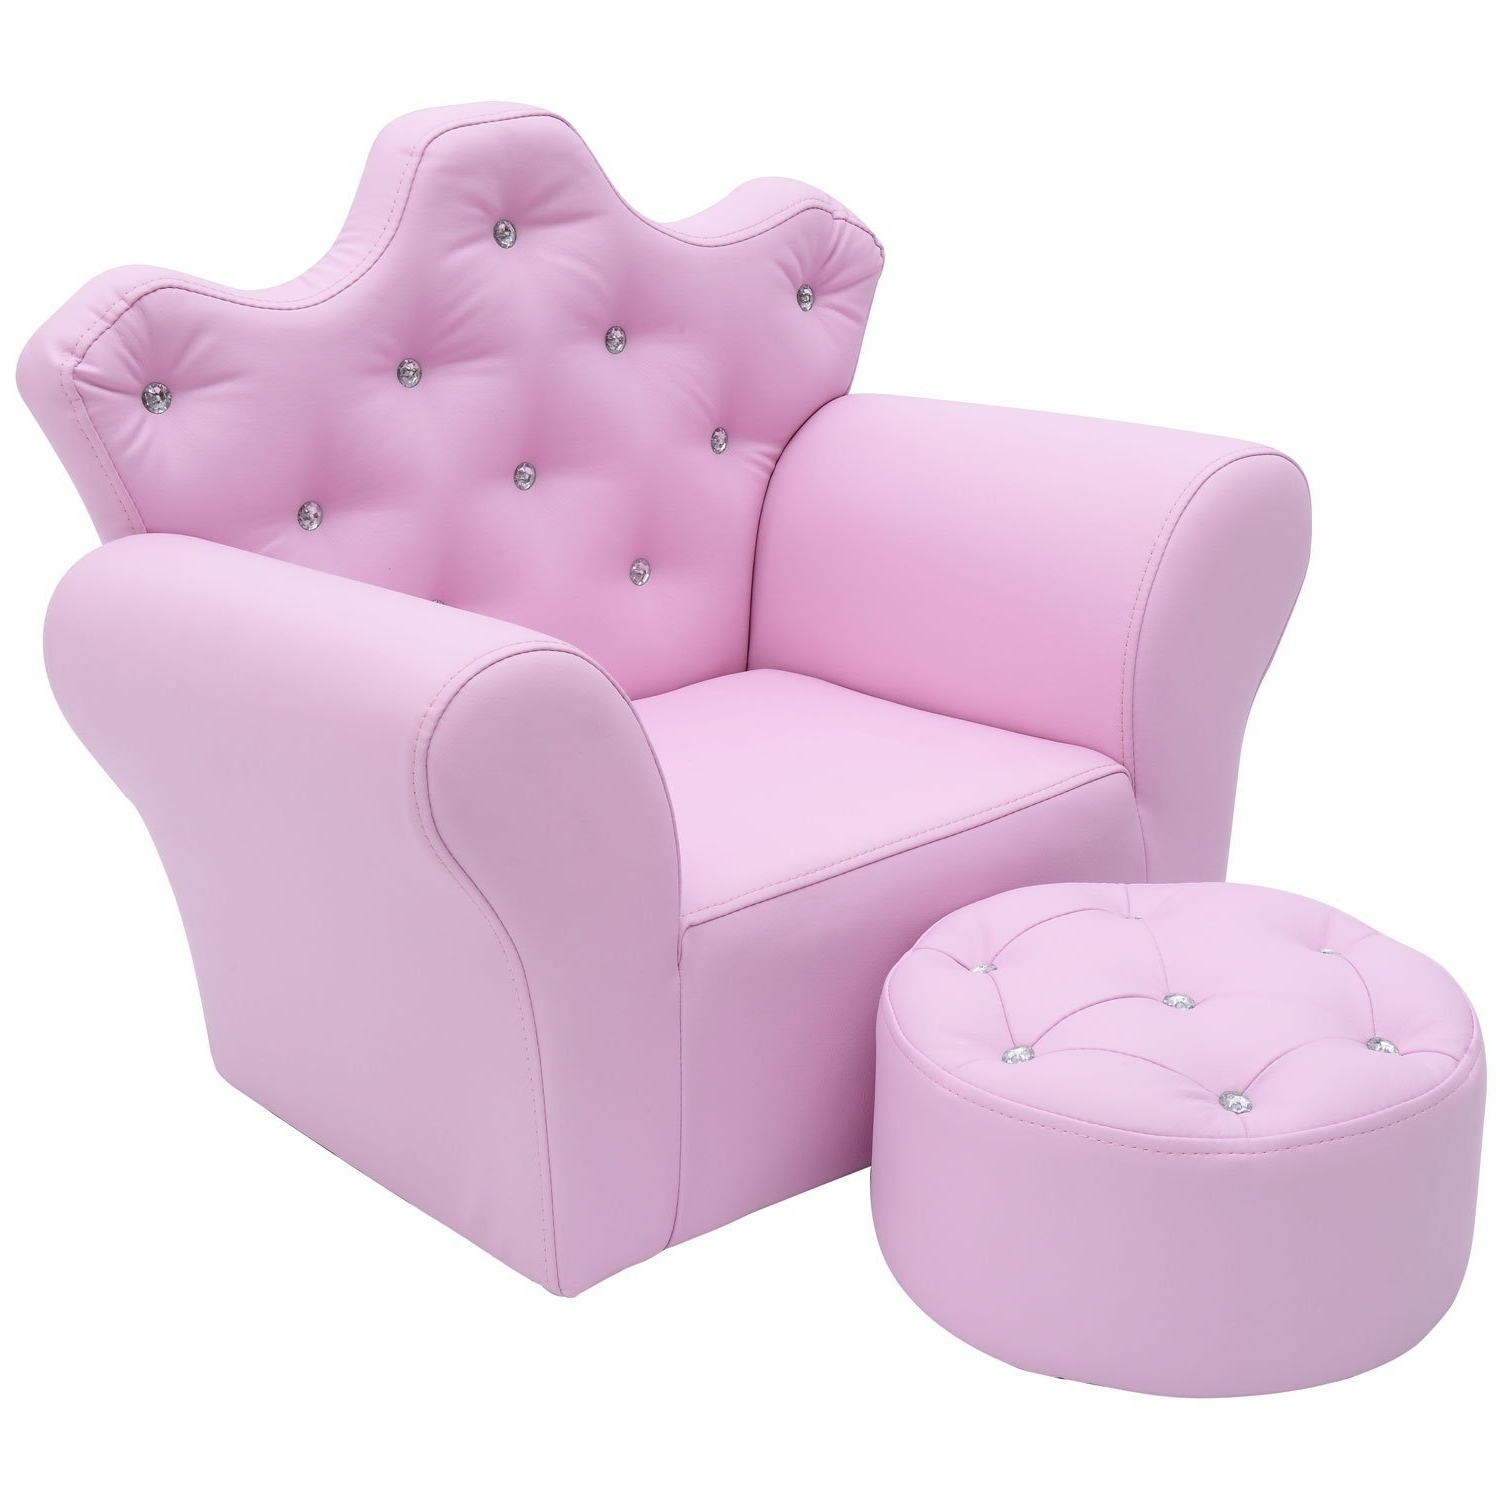 Armchair : Kids Lounge Chair Recliner For 12 Year Old Upholstered With Regard To Fashionable Personalized Kids Chairs And Sofas (View 3 of 20)